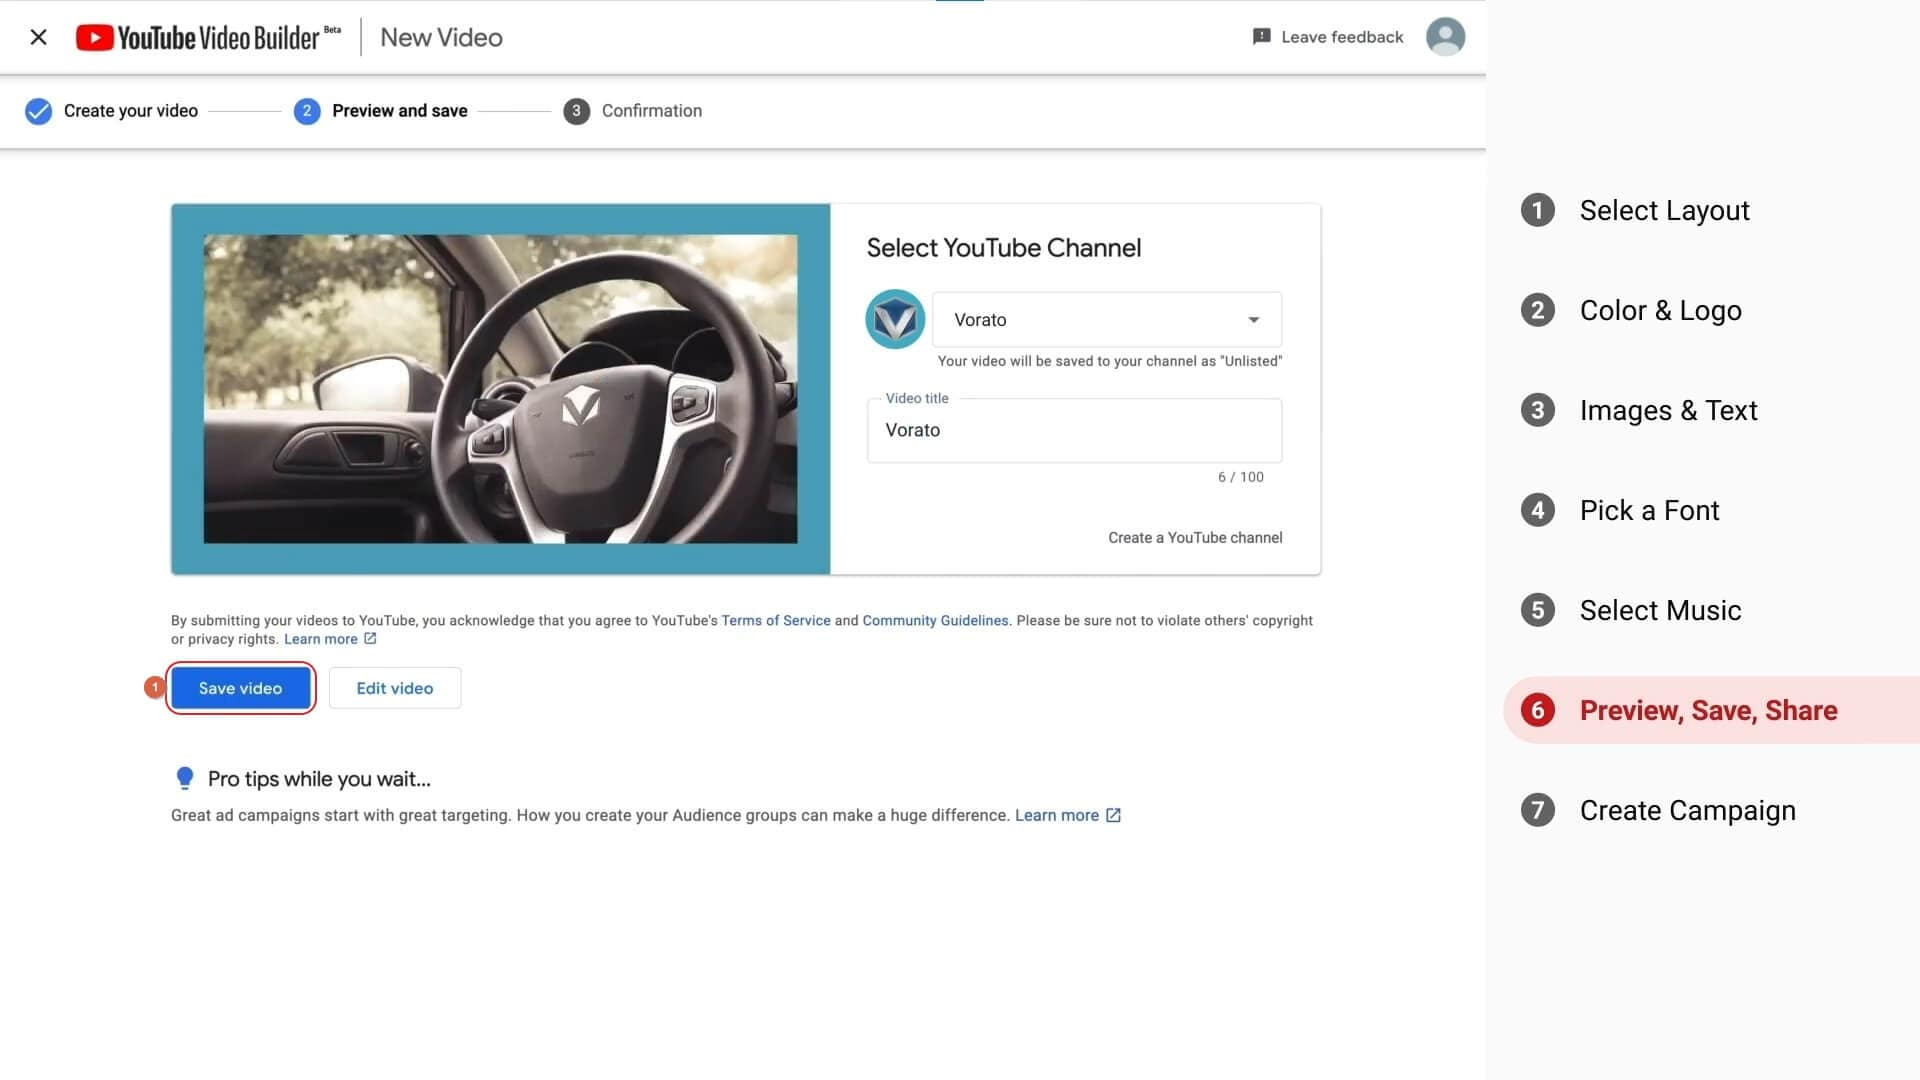 YouTube Video Builder Video Preview and Save